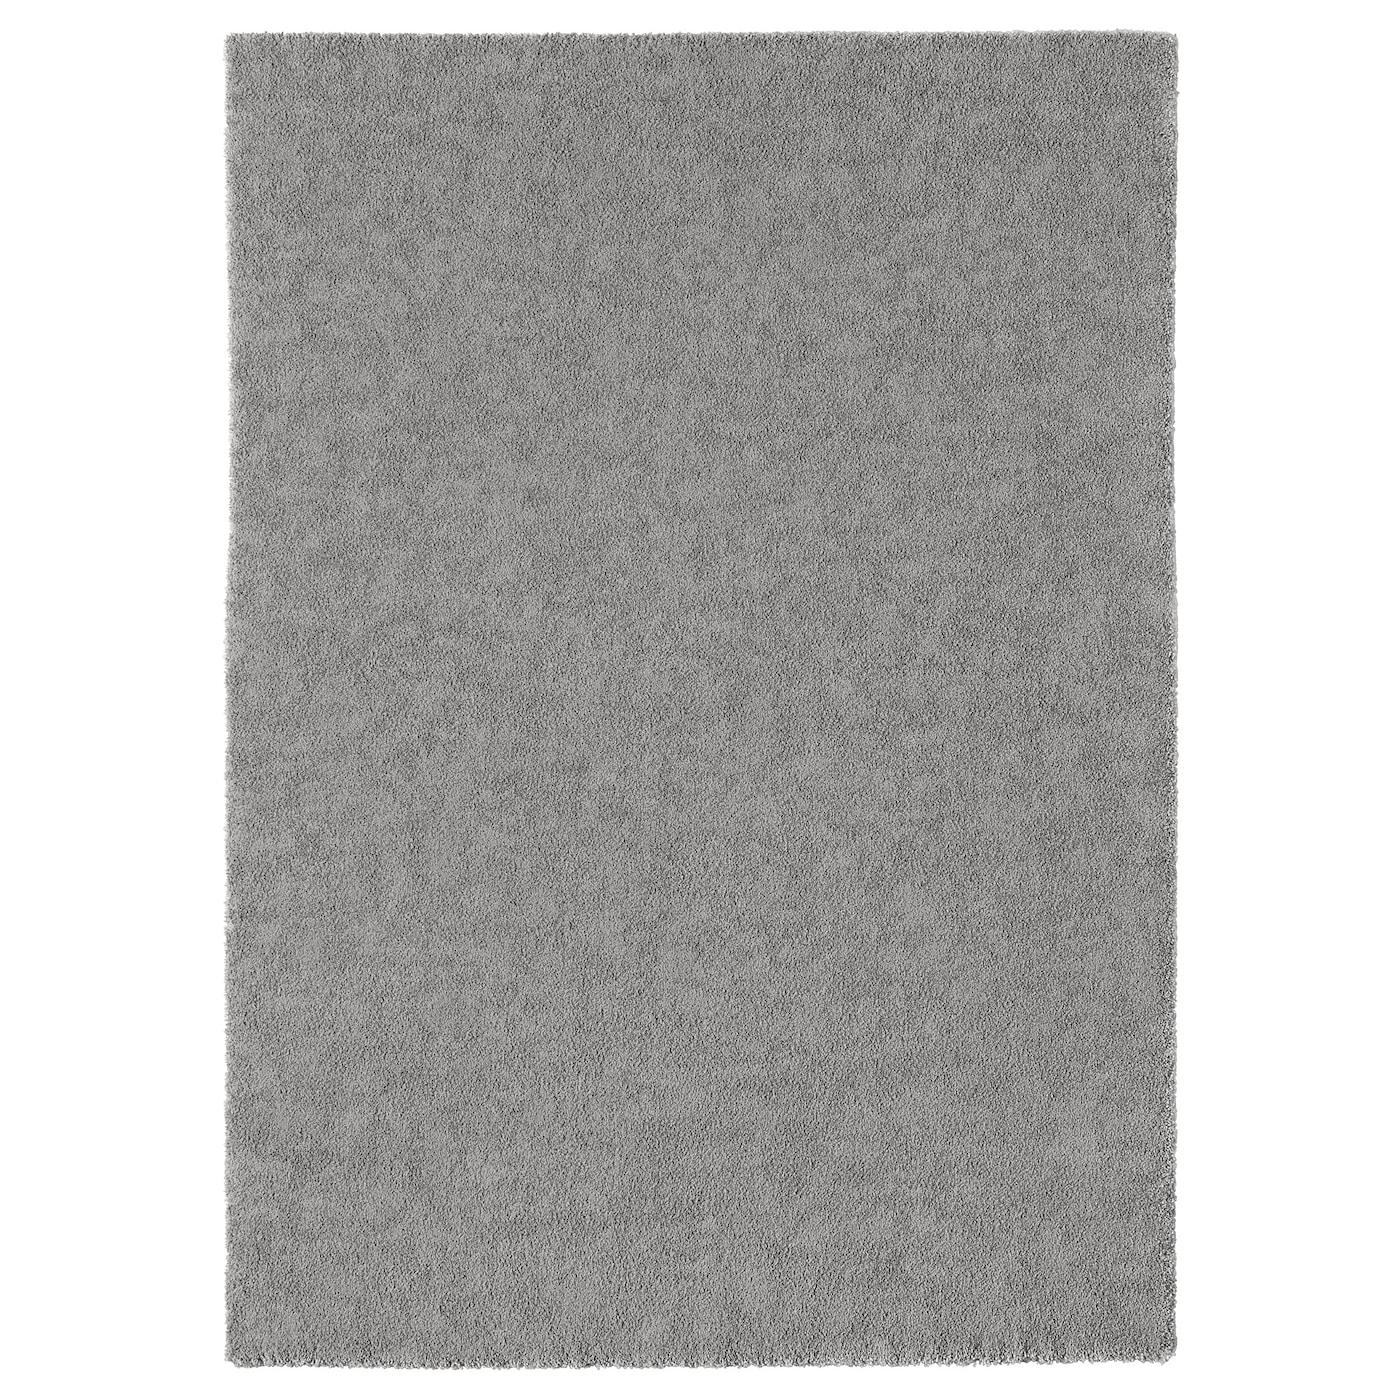 Ikea Stoense Rug Low Pile The Light Sheen Creates Variations In Surface